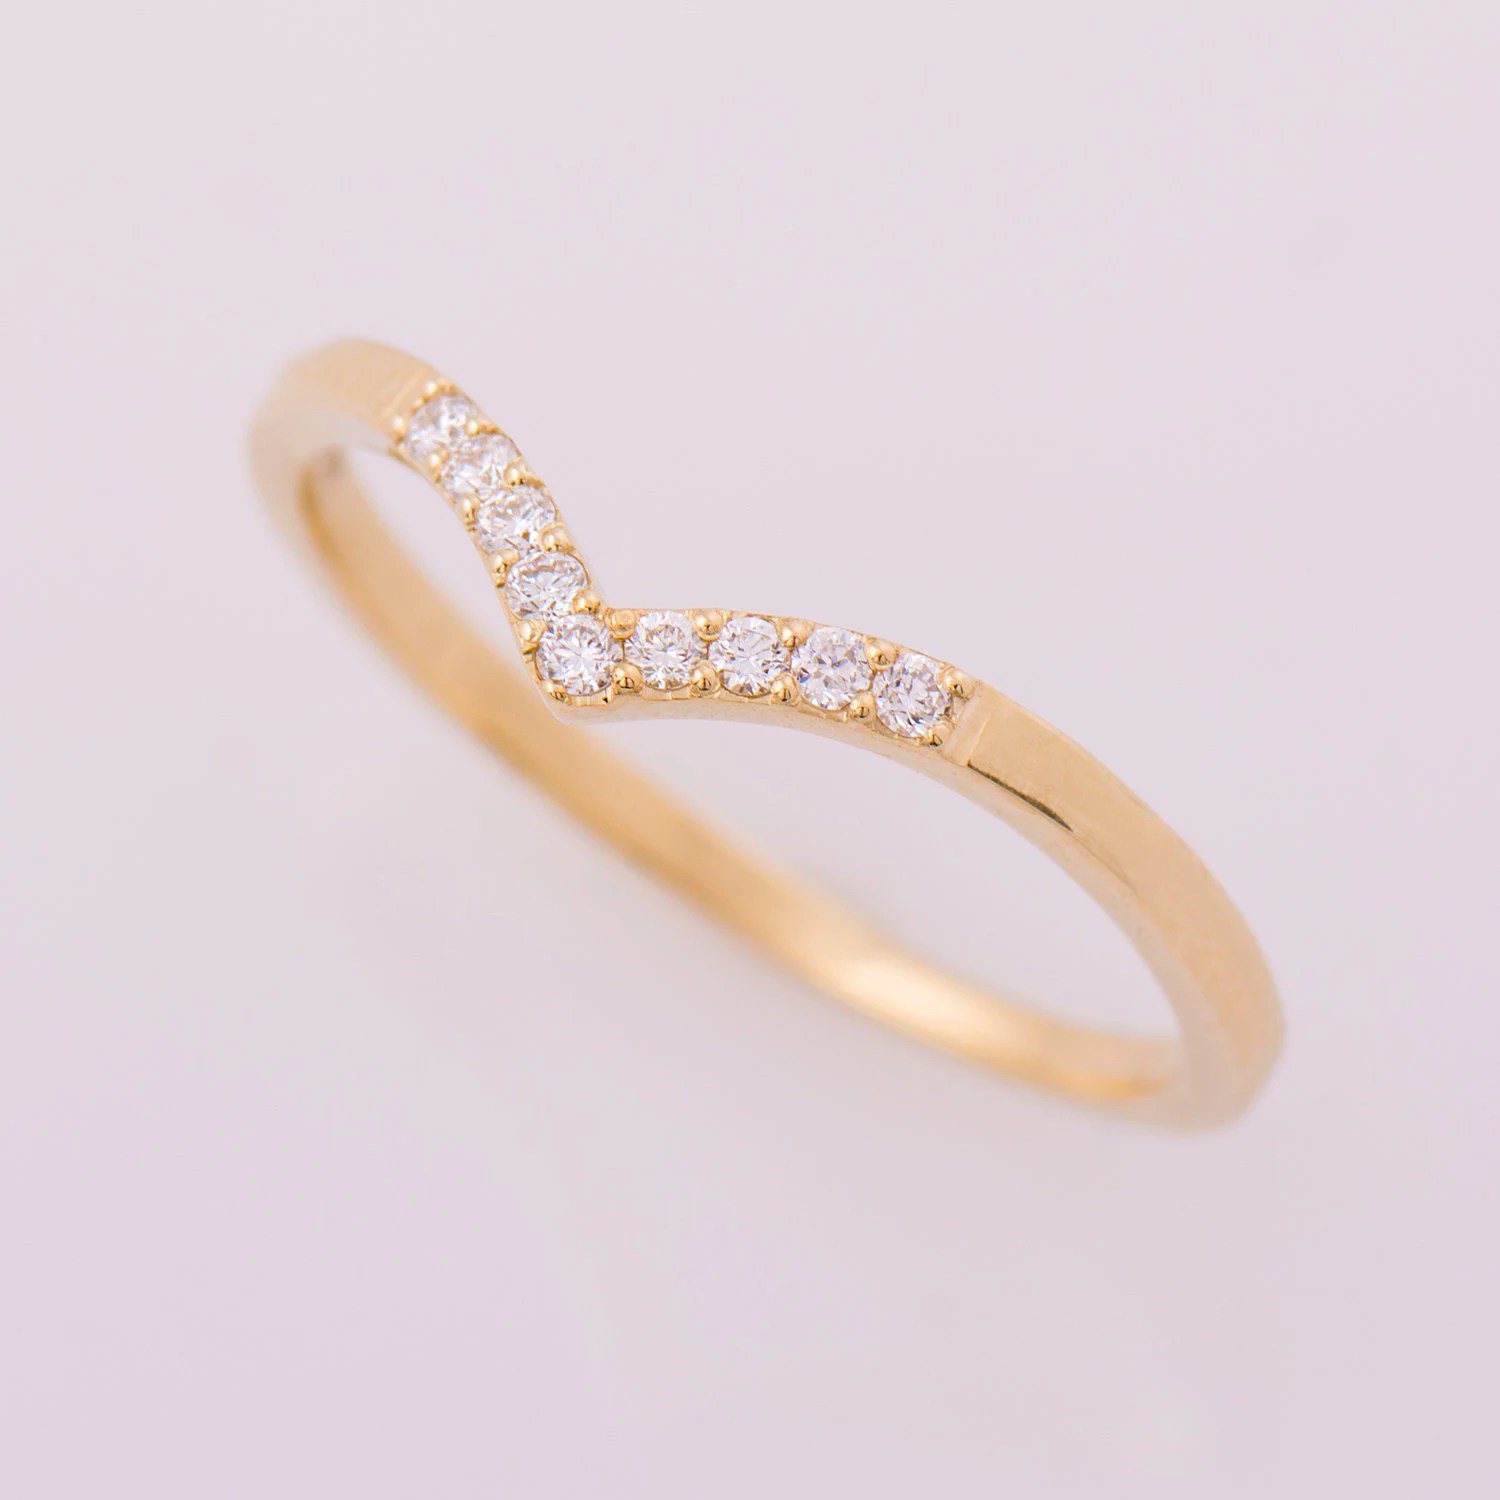 curved wedding band wedding band curved Chevron Ring 14K Yellow Gold Diamonds Ring V Shaped Ring Curved Ring Thin Diamond Ring Dainty Wedding Band Diamond Wedding Ring